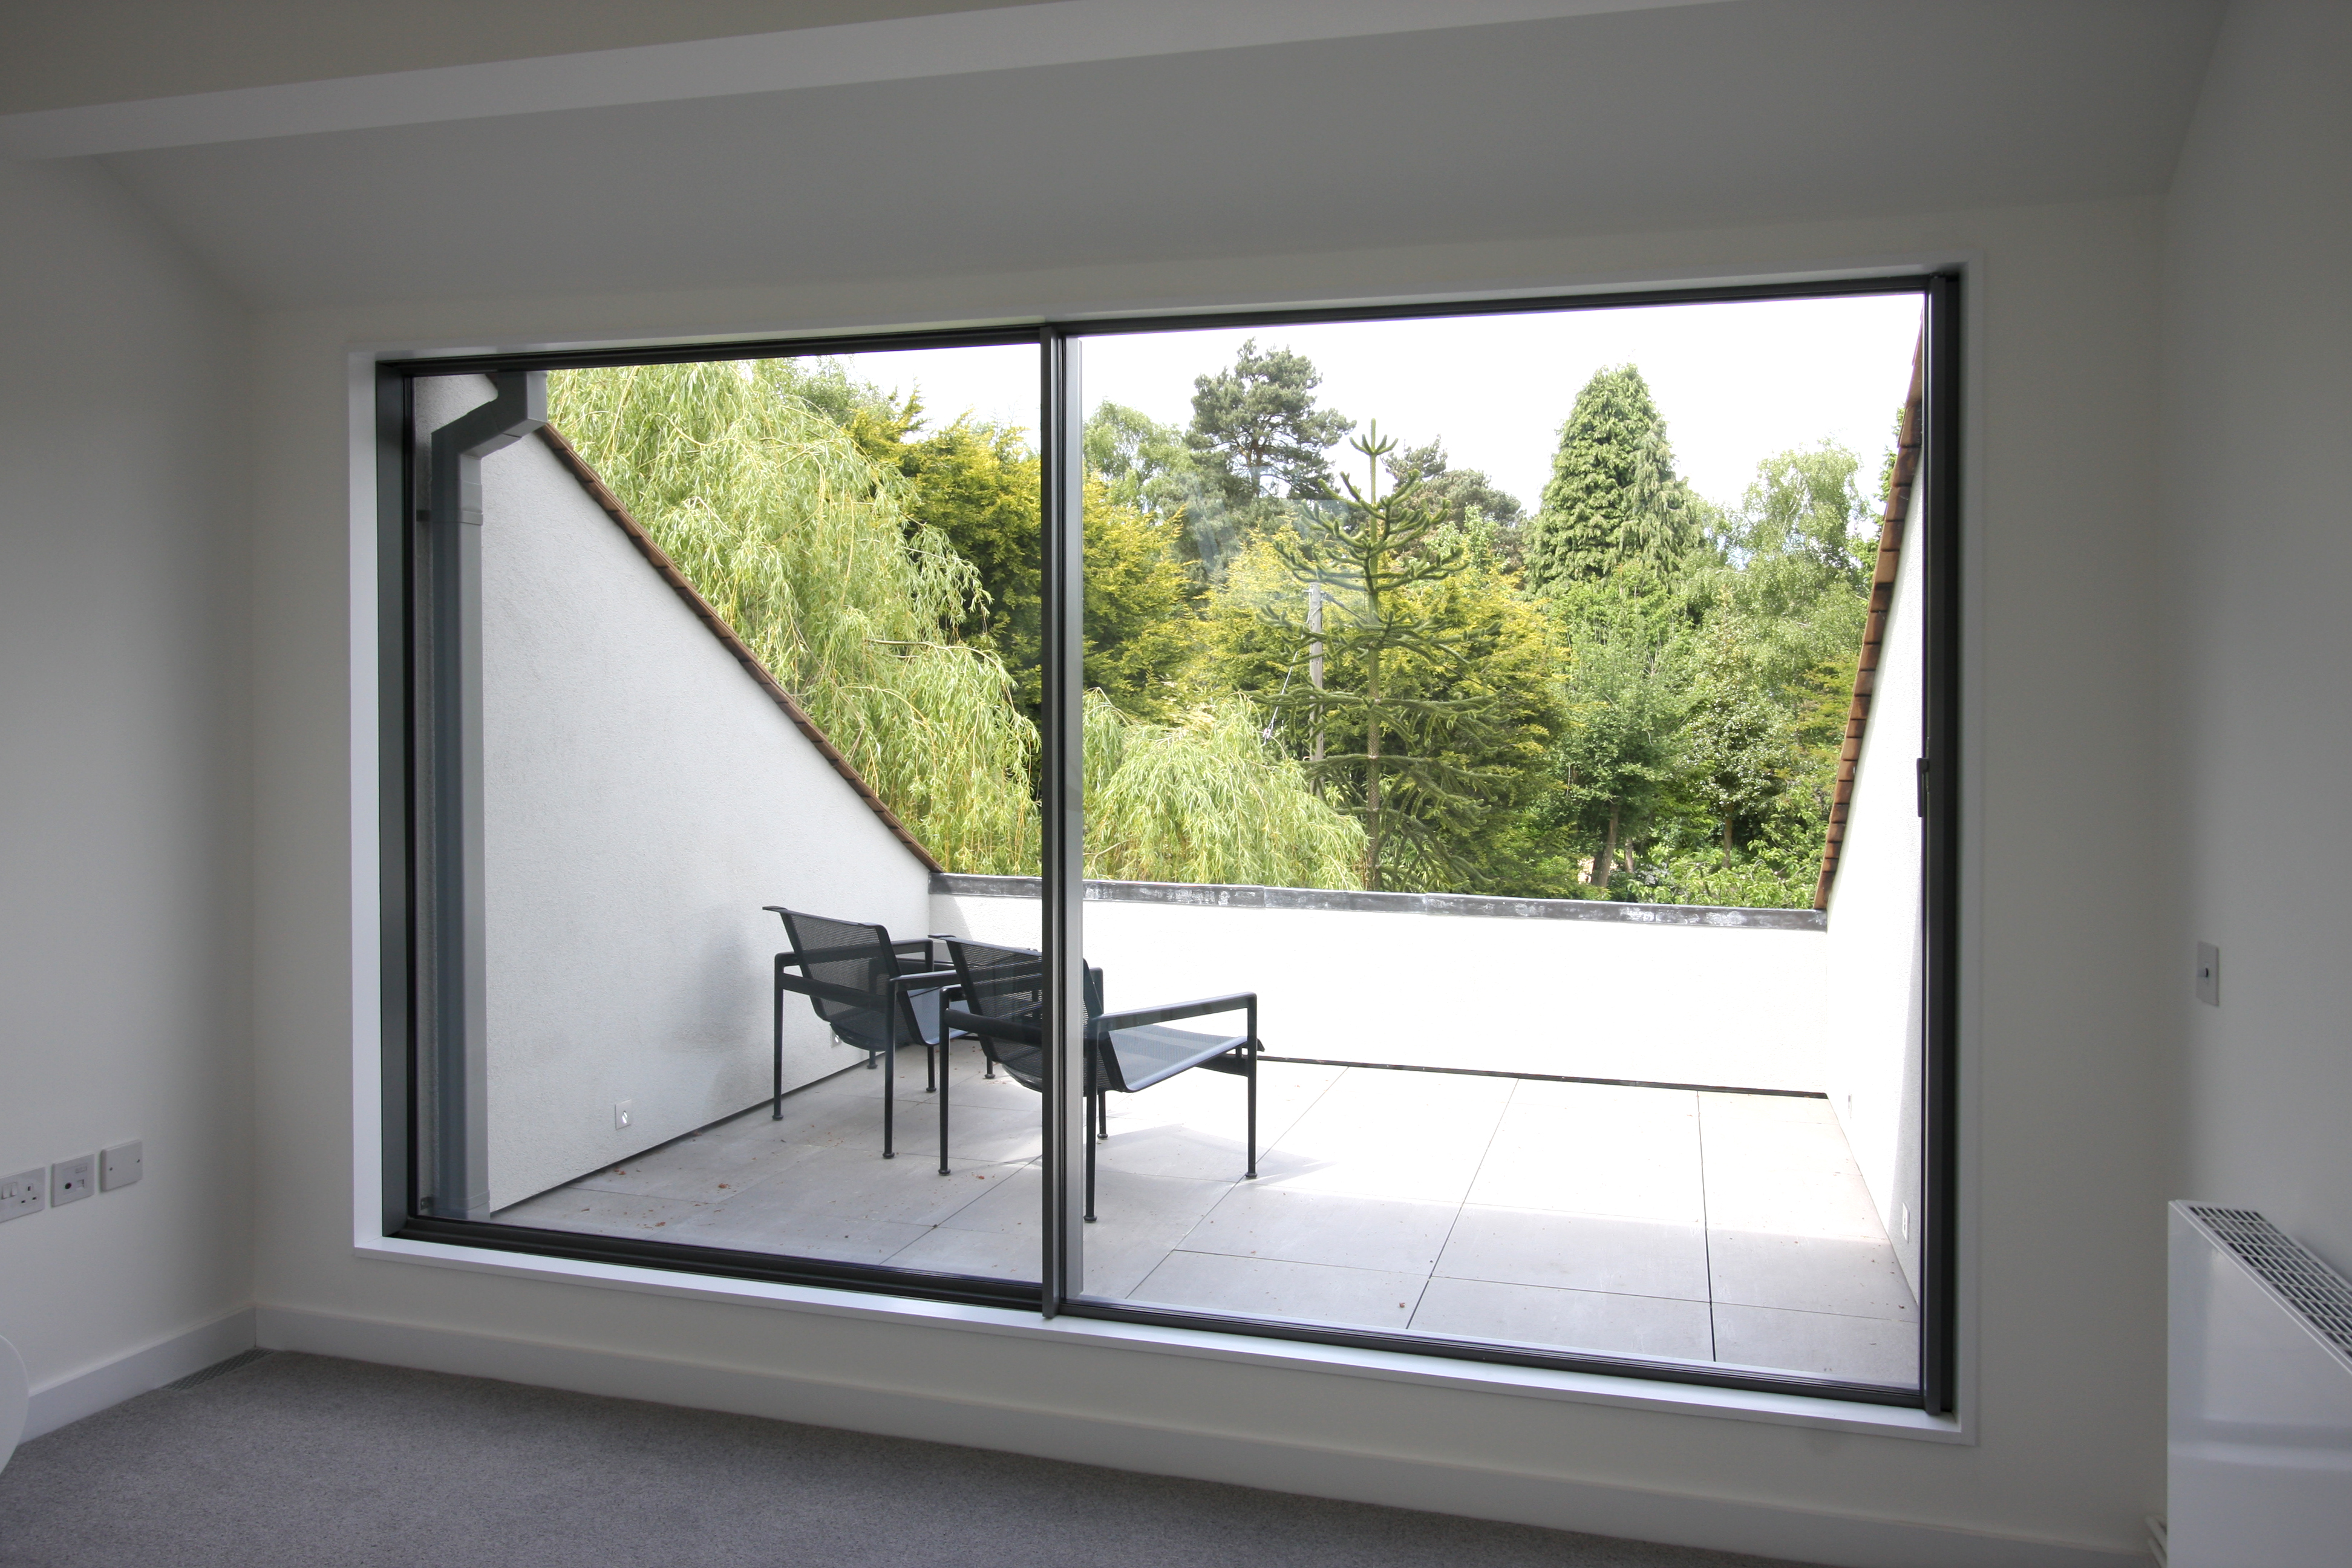 minimal windows leading out onto the first floor bedroom balcony